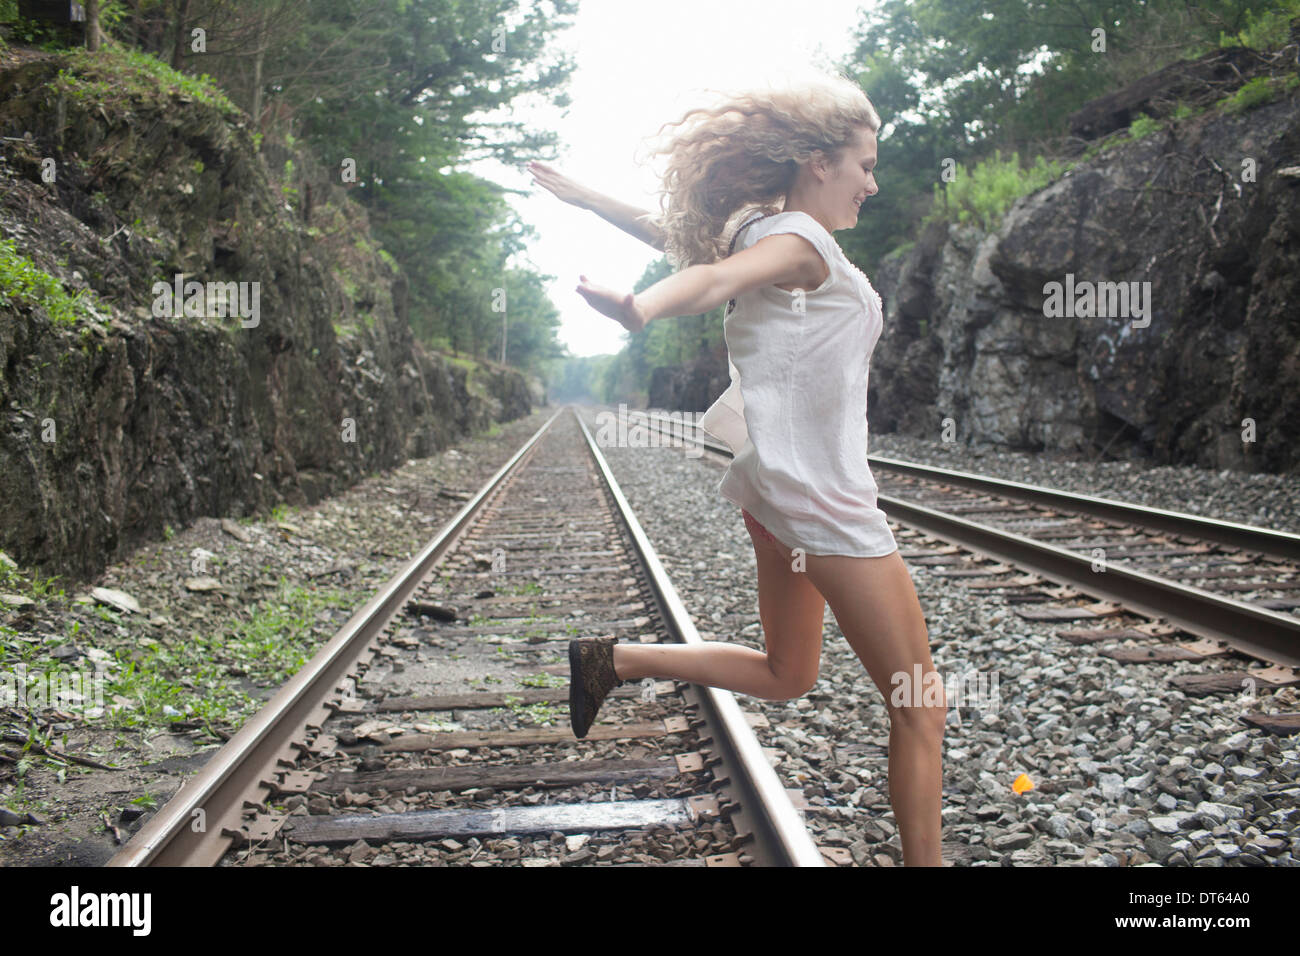 Teenage girl jumping over railway track - Stock Image